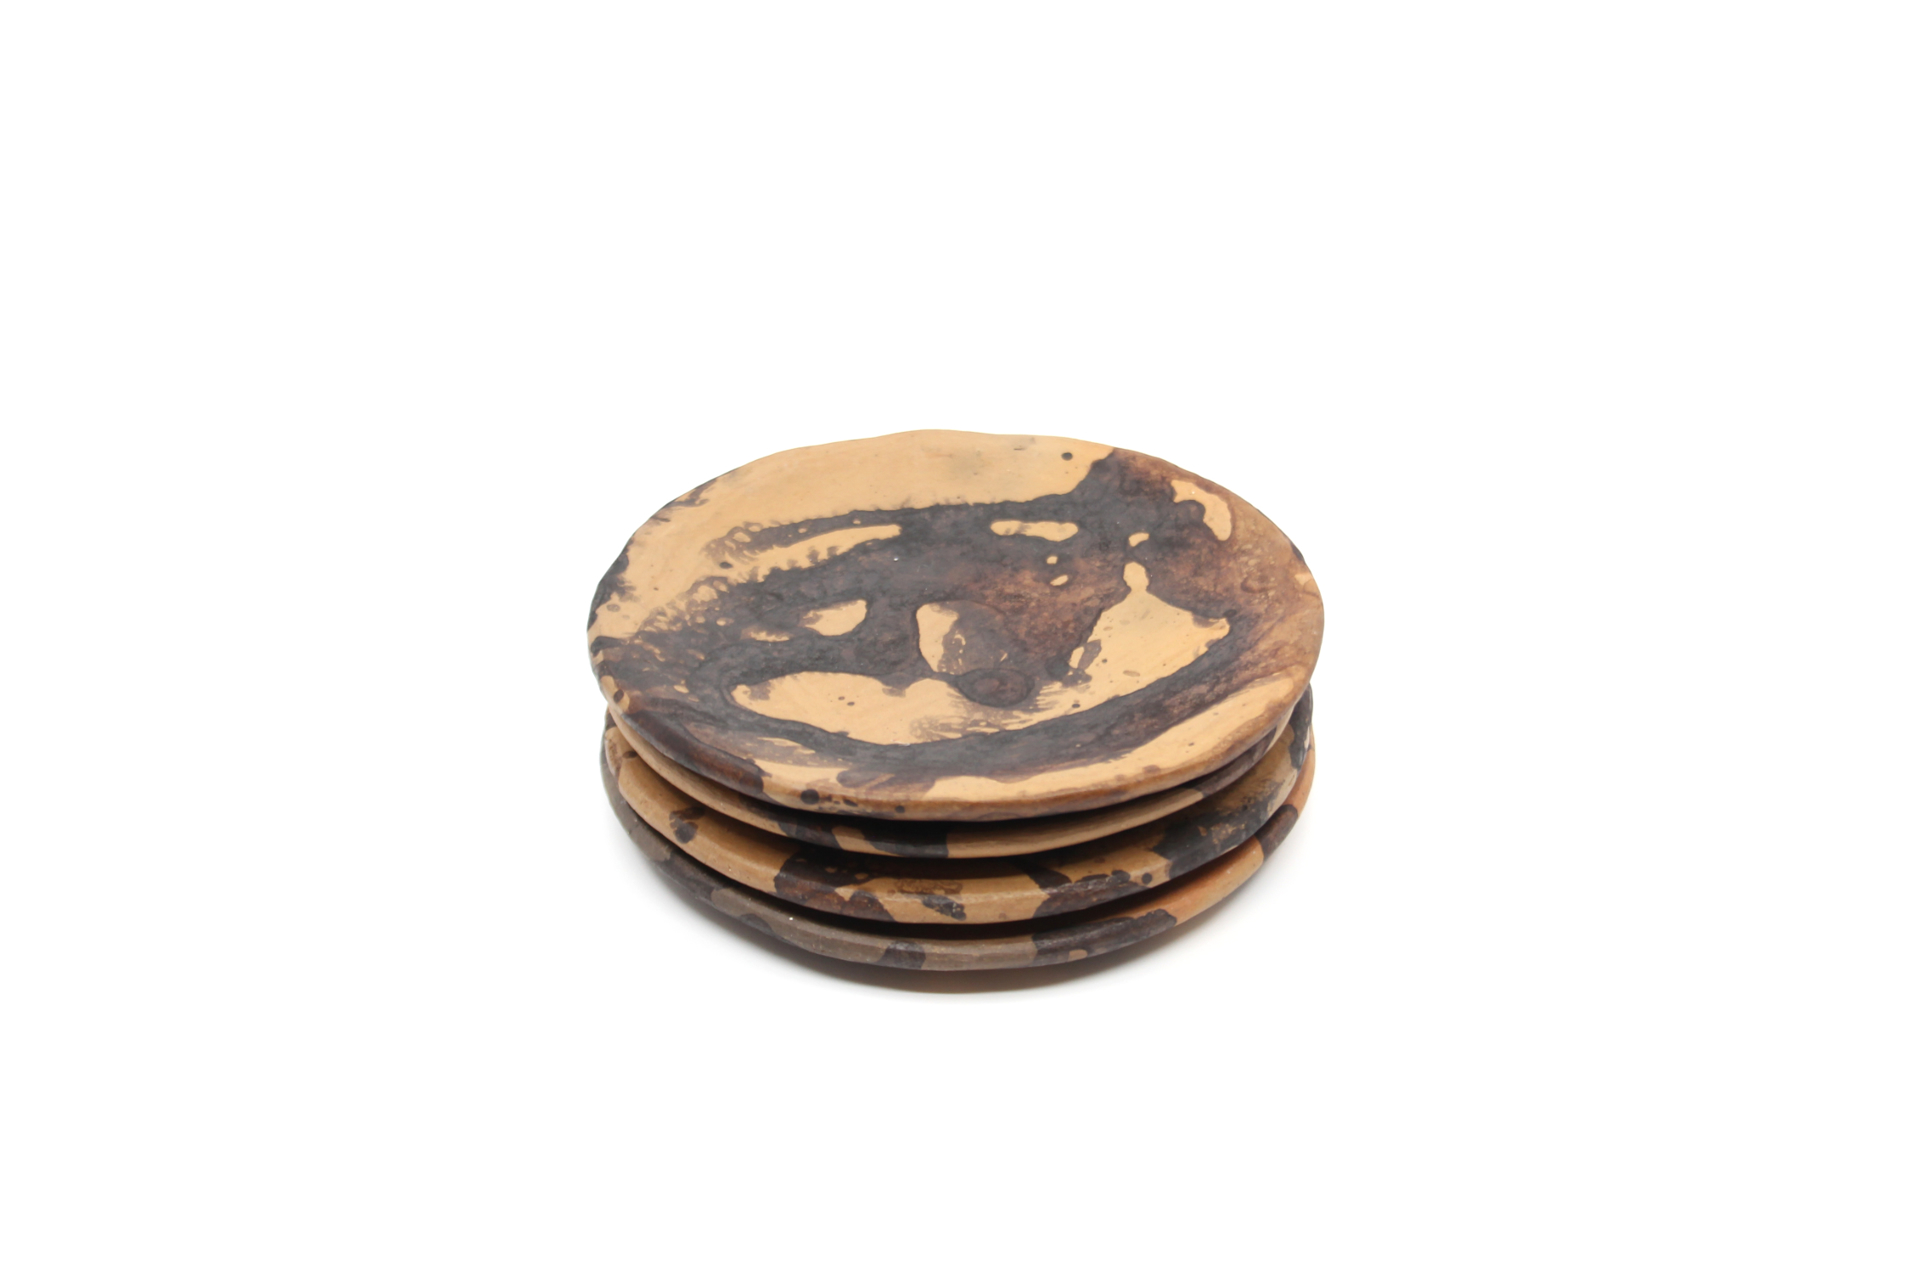 Nabora Plate by Colectivo 1050